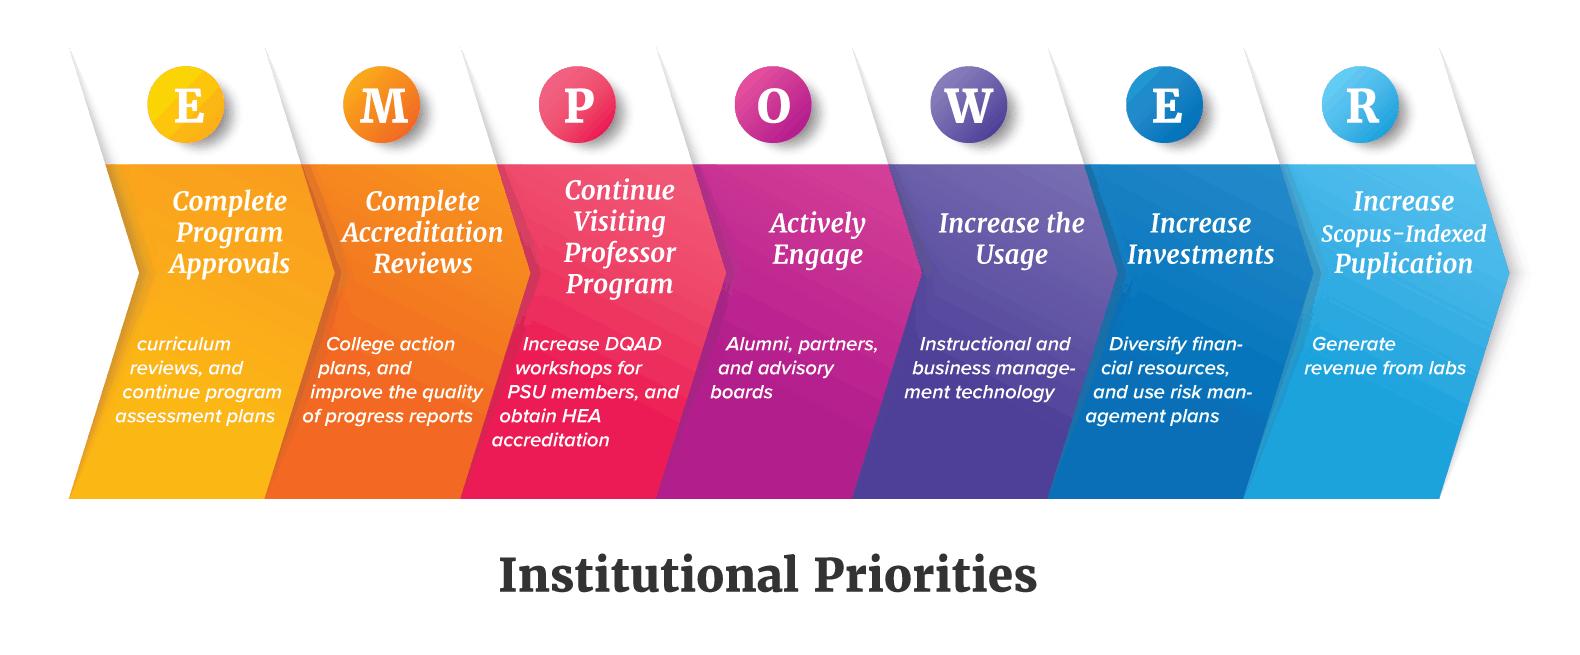 institutional priorities